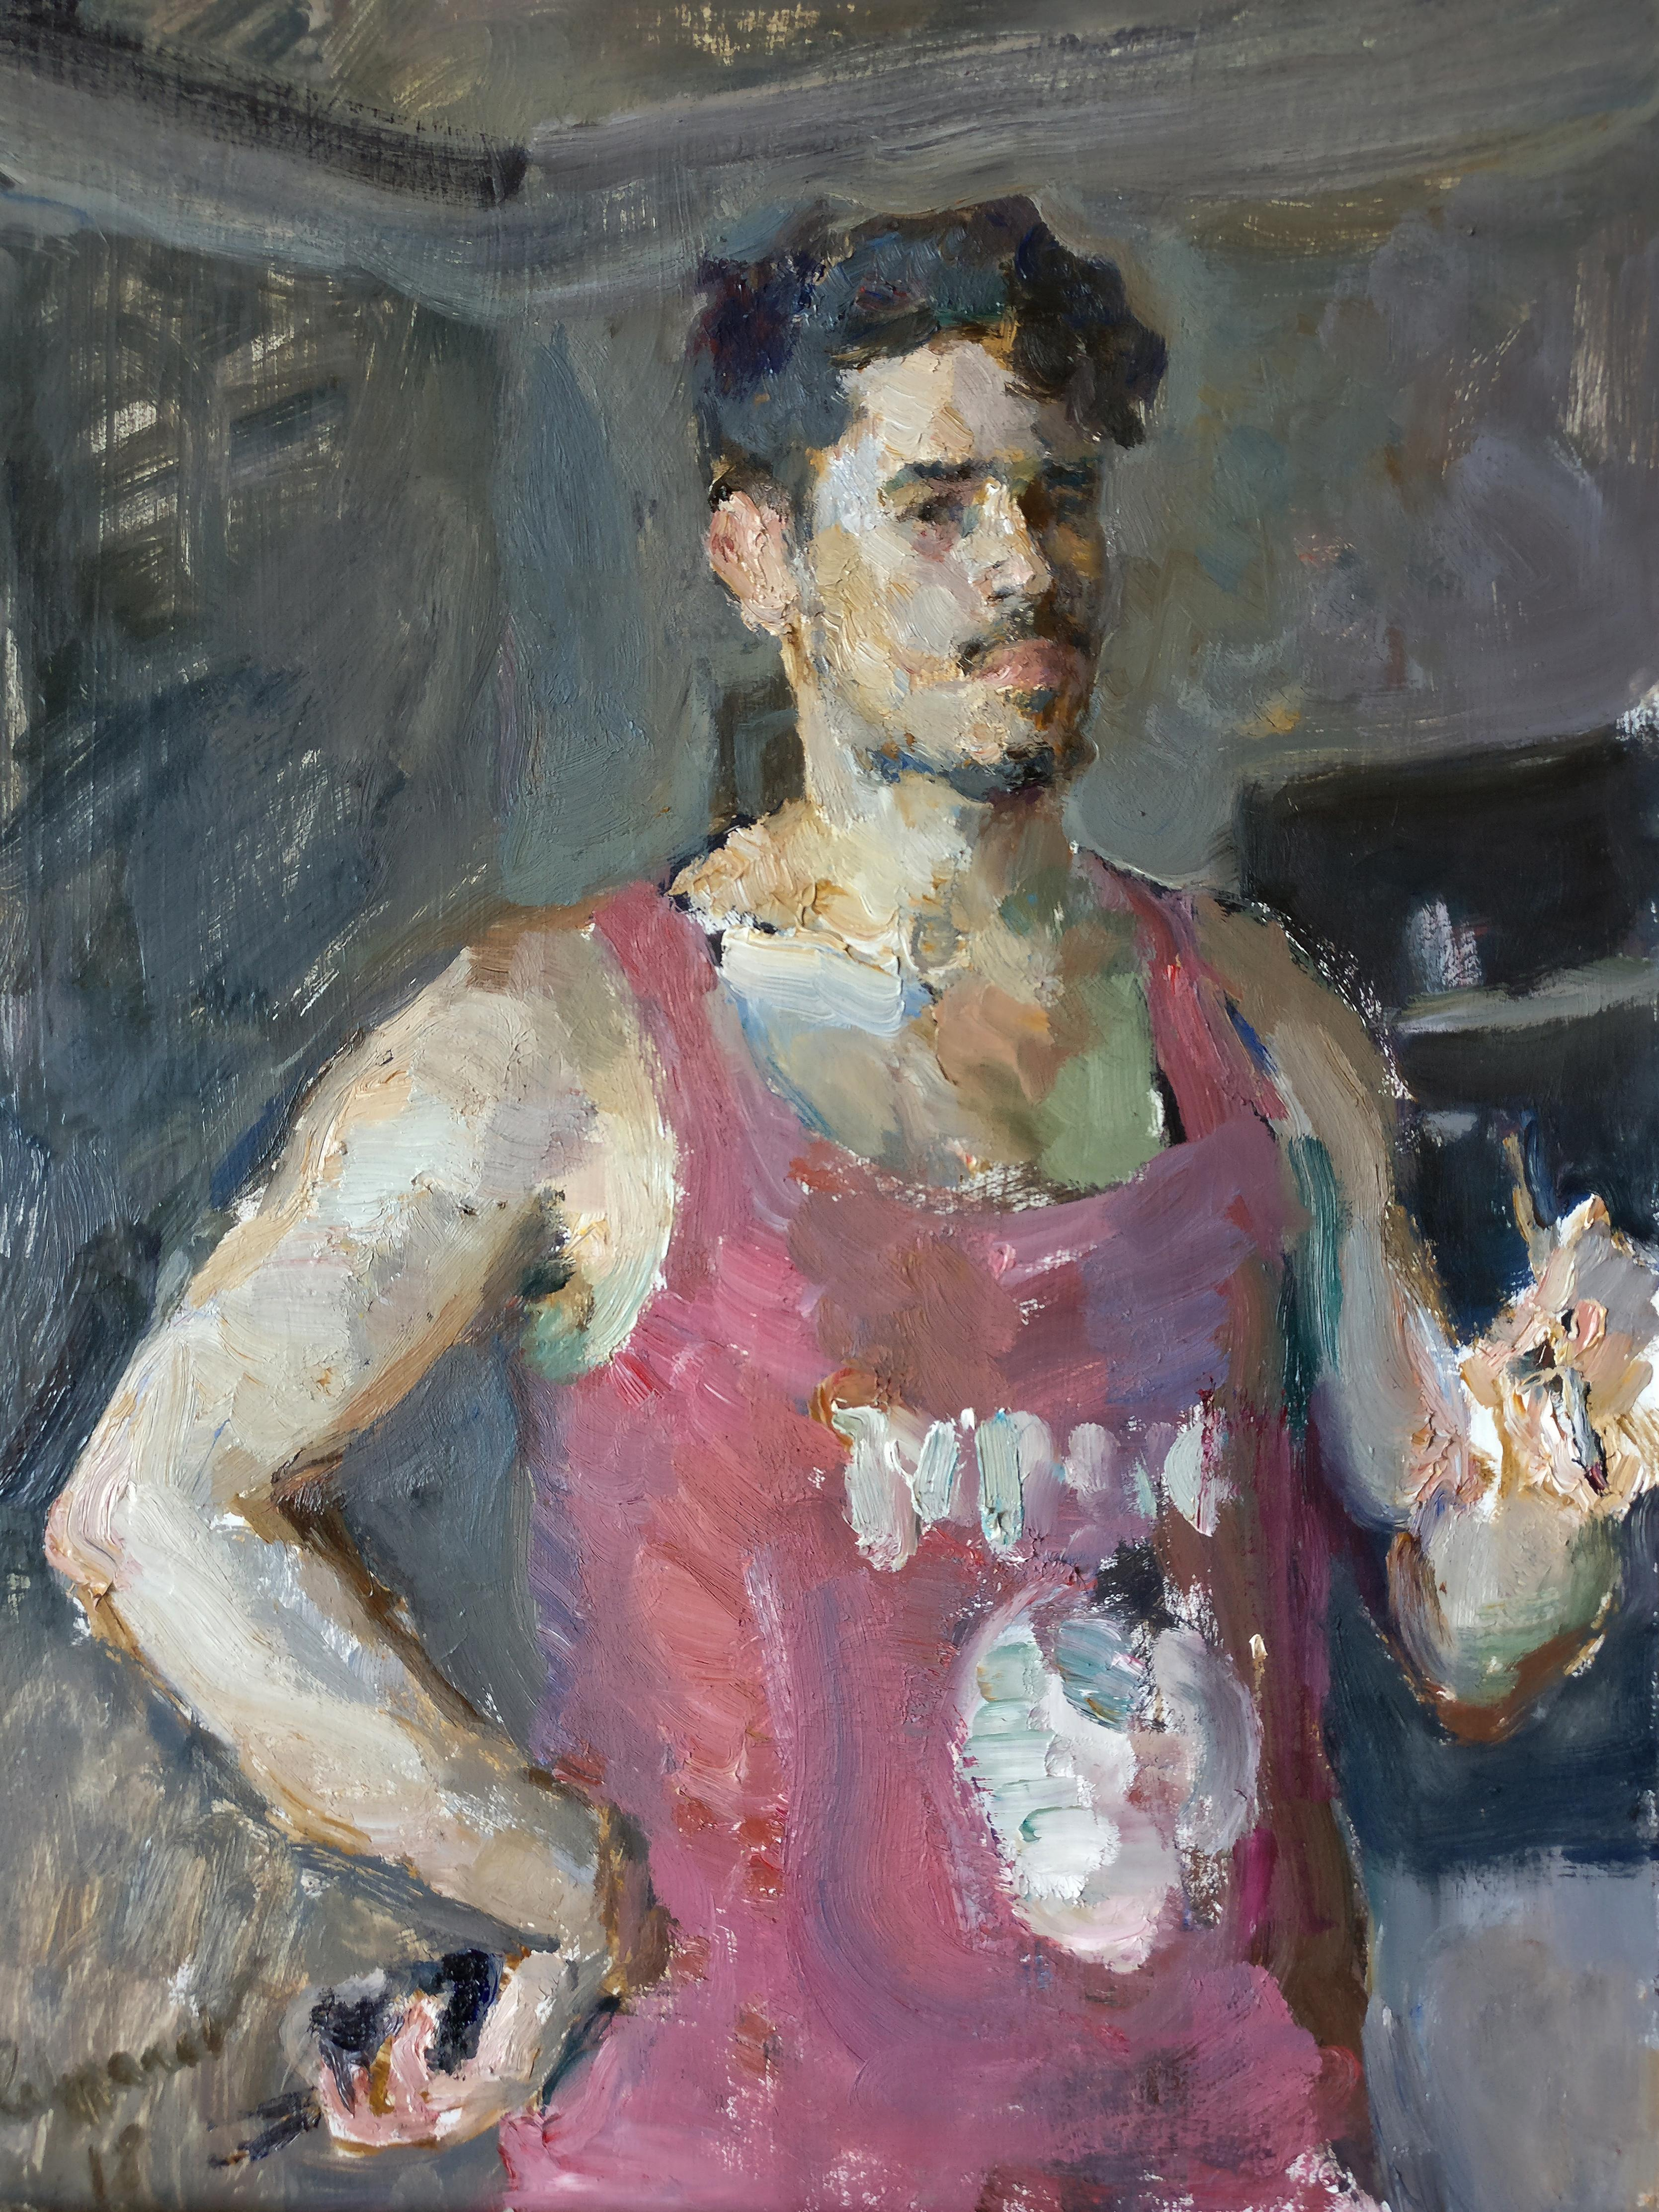 Self Portrait With a Brush - 21st Century Contemporary Oil Painting